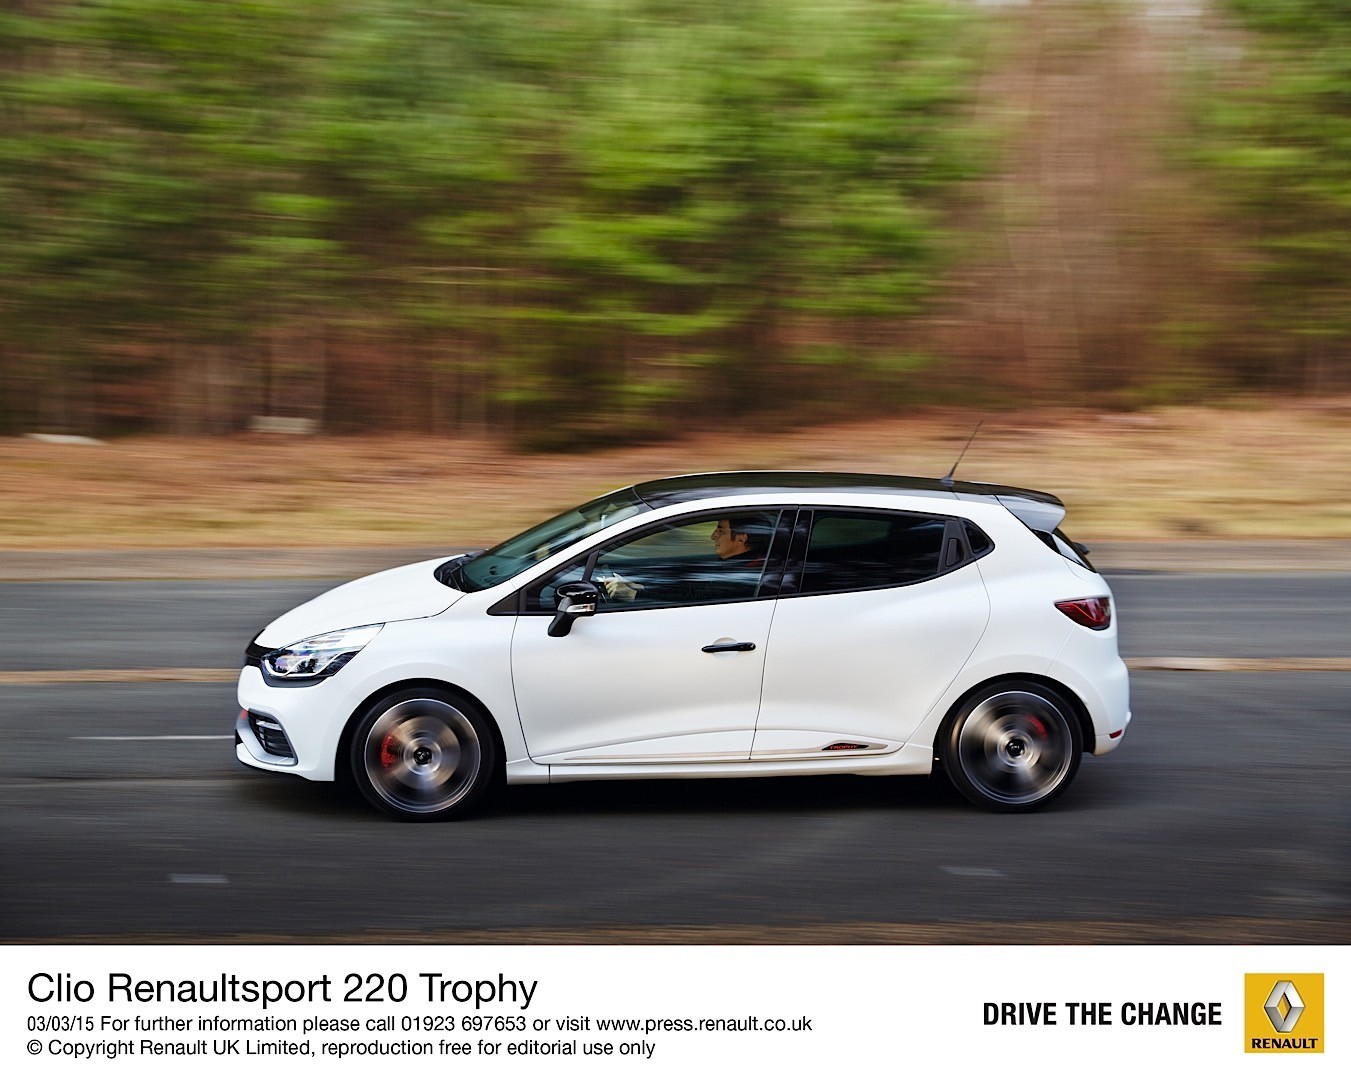 renault clio r s 220 trophy uk pricing and specs revealed